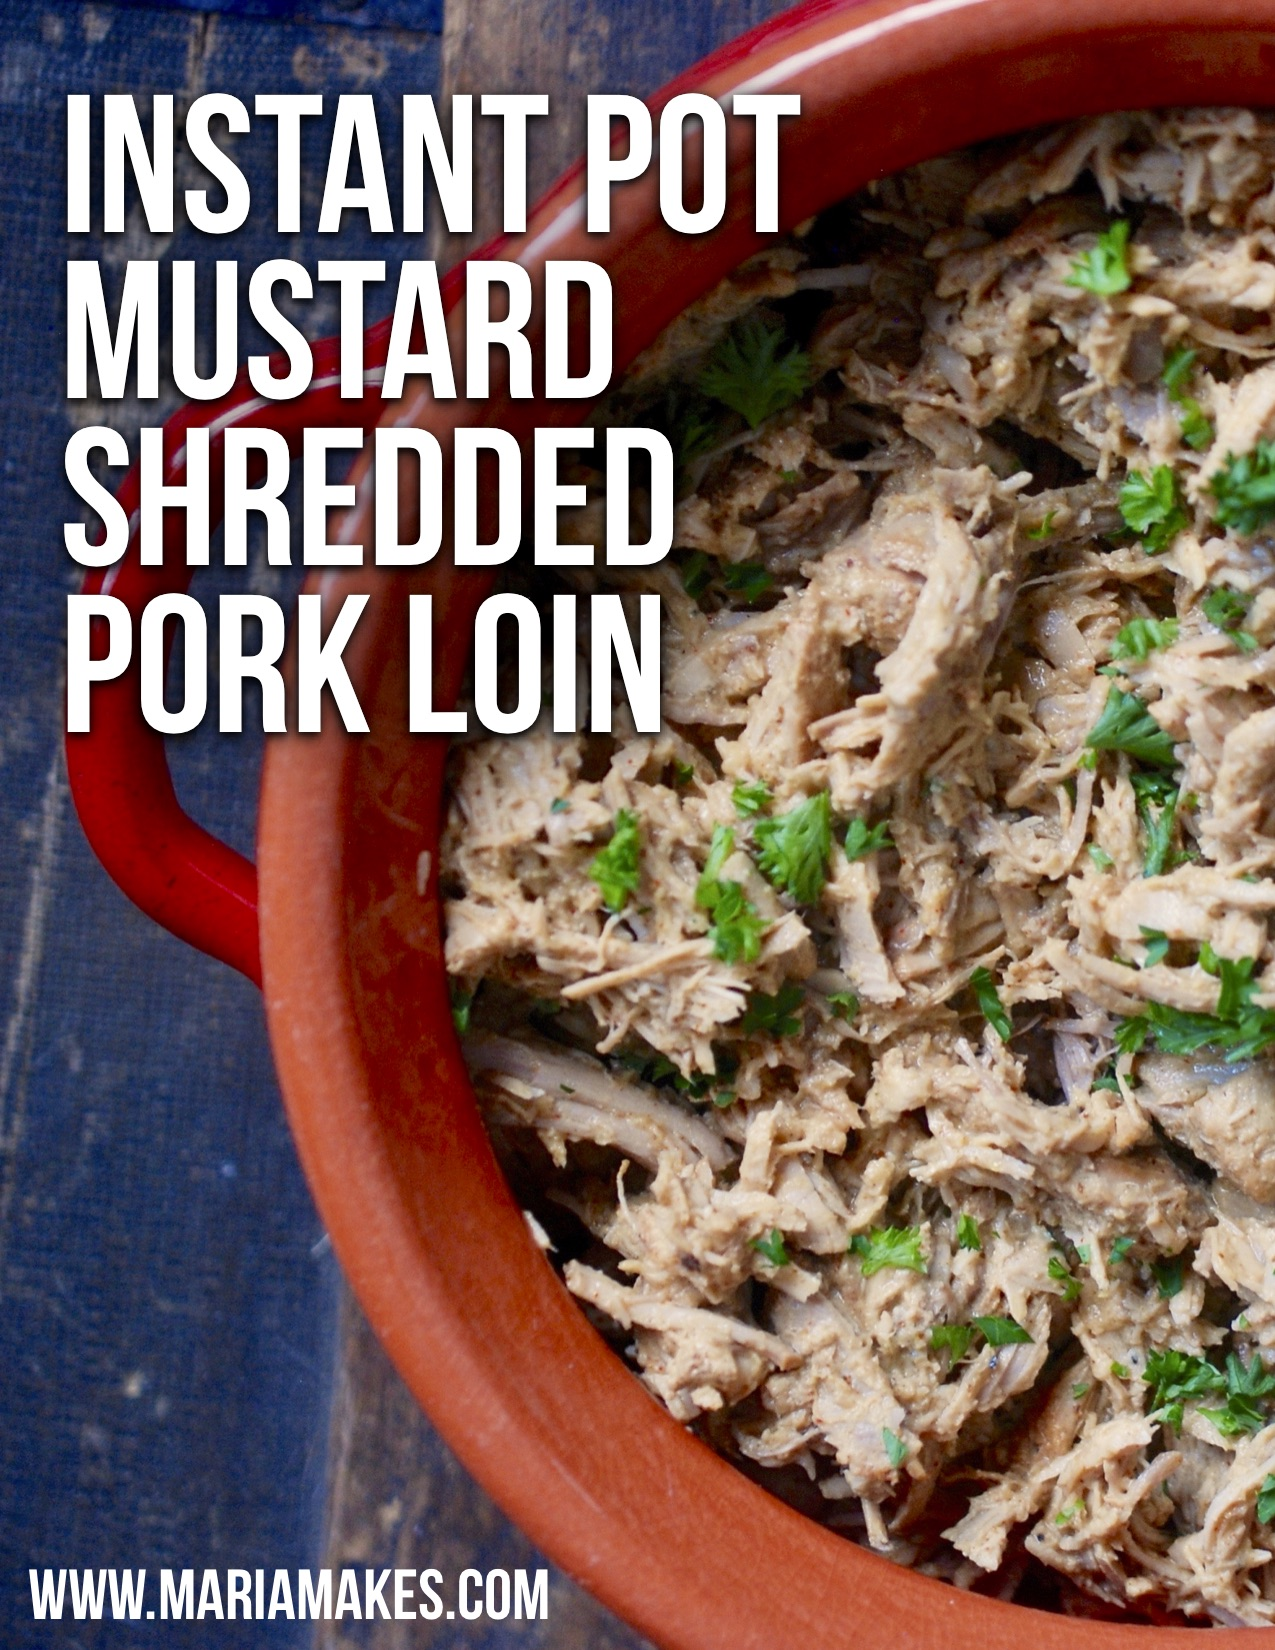 Instant Pot Mustard Shredded Pork Loin – Maria Makes: Sweet mustard-y pulled pork, pairs perfectly with sweet potatoes and coleslaw! #Whole30 and #Paleo